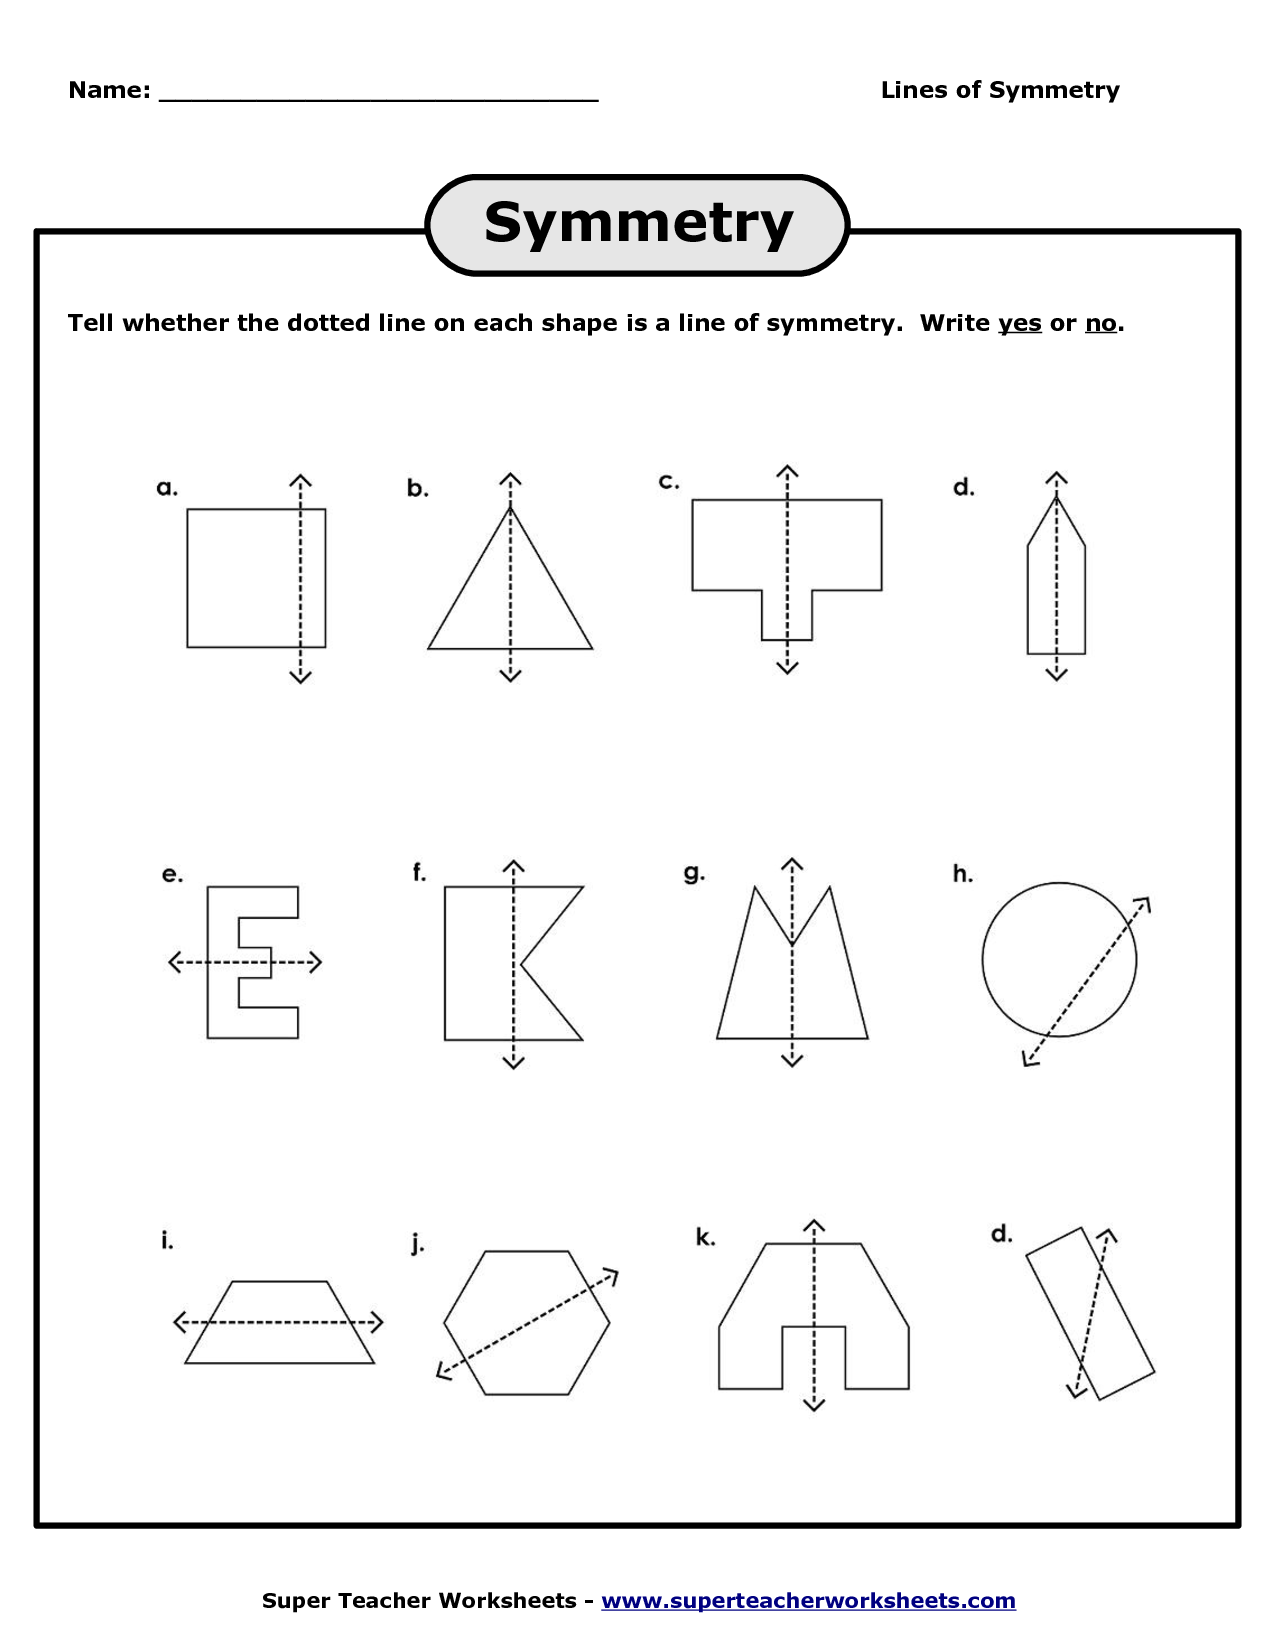 lines of symmetry worksheets lines of symmetry worksheet pdf checklist symmetry. Black Bedroom Furniture Sets. Home Design Ideas